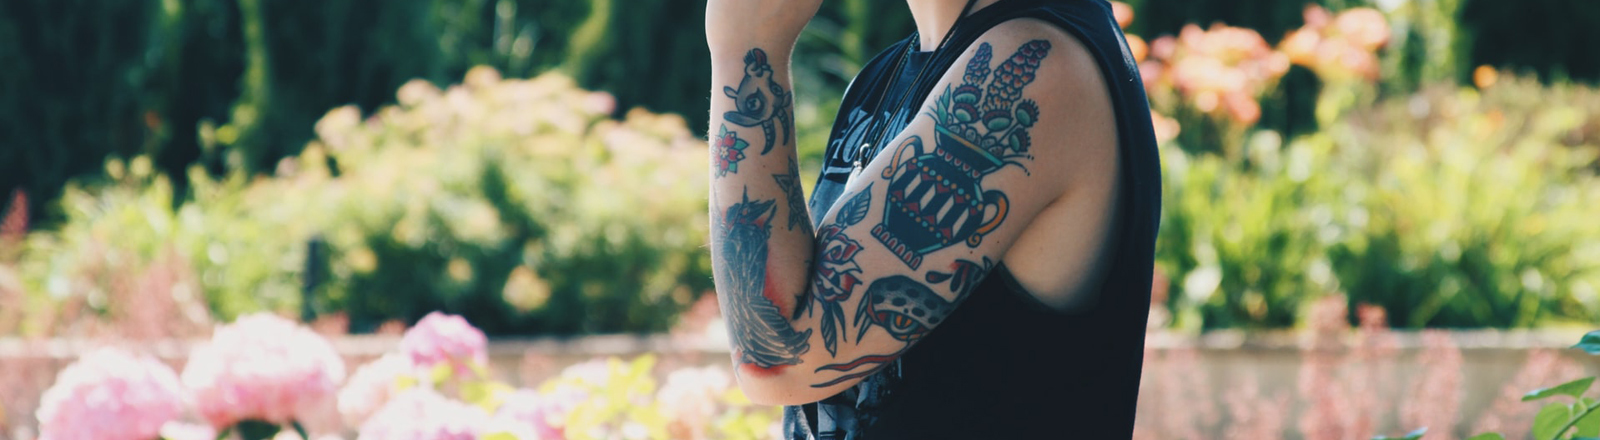 Arm mit bunten Tattoos